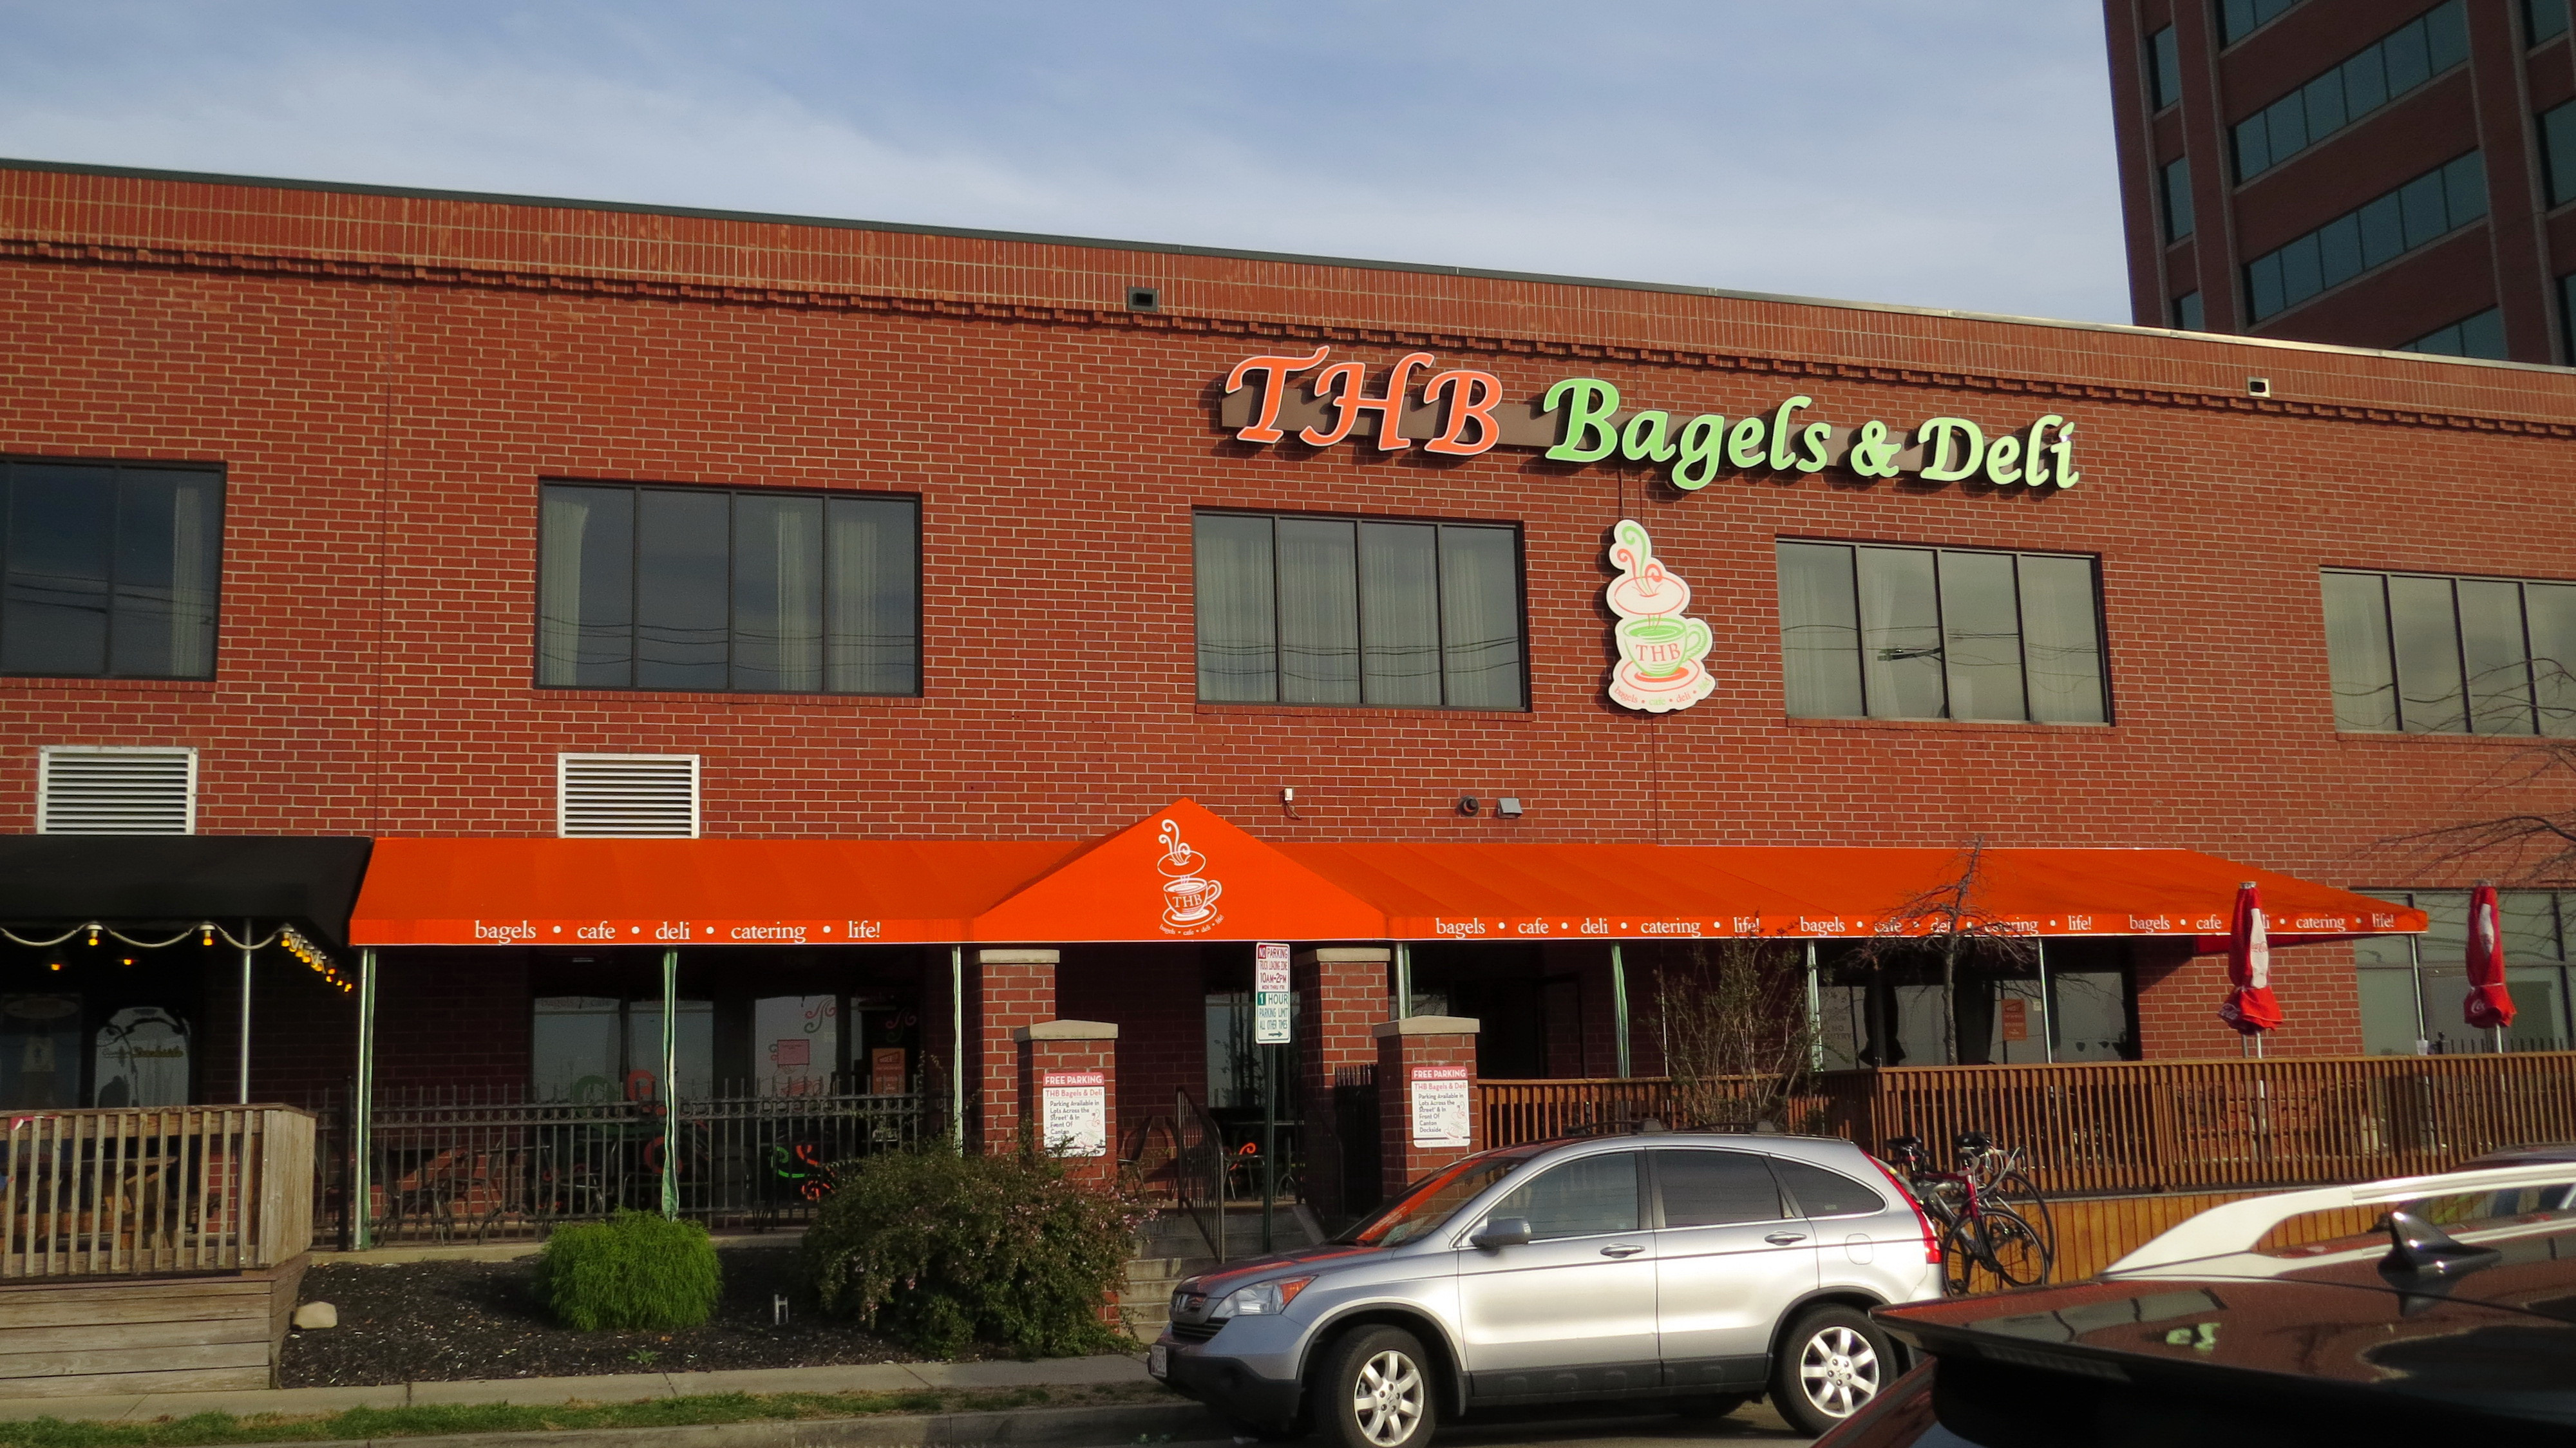 Bagels Unlimited Little Falls Nj  A Hoffman Awning Co Phone 410 685 5687